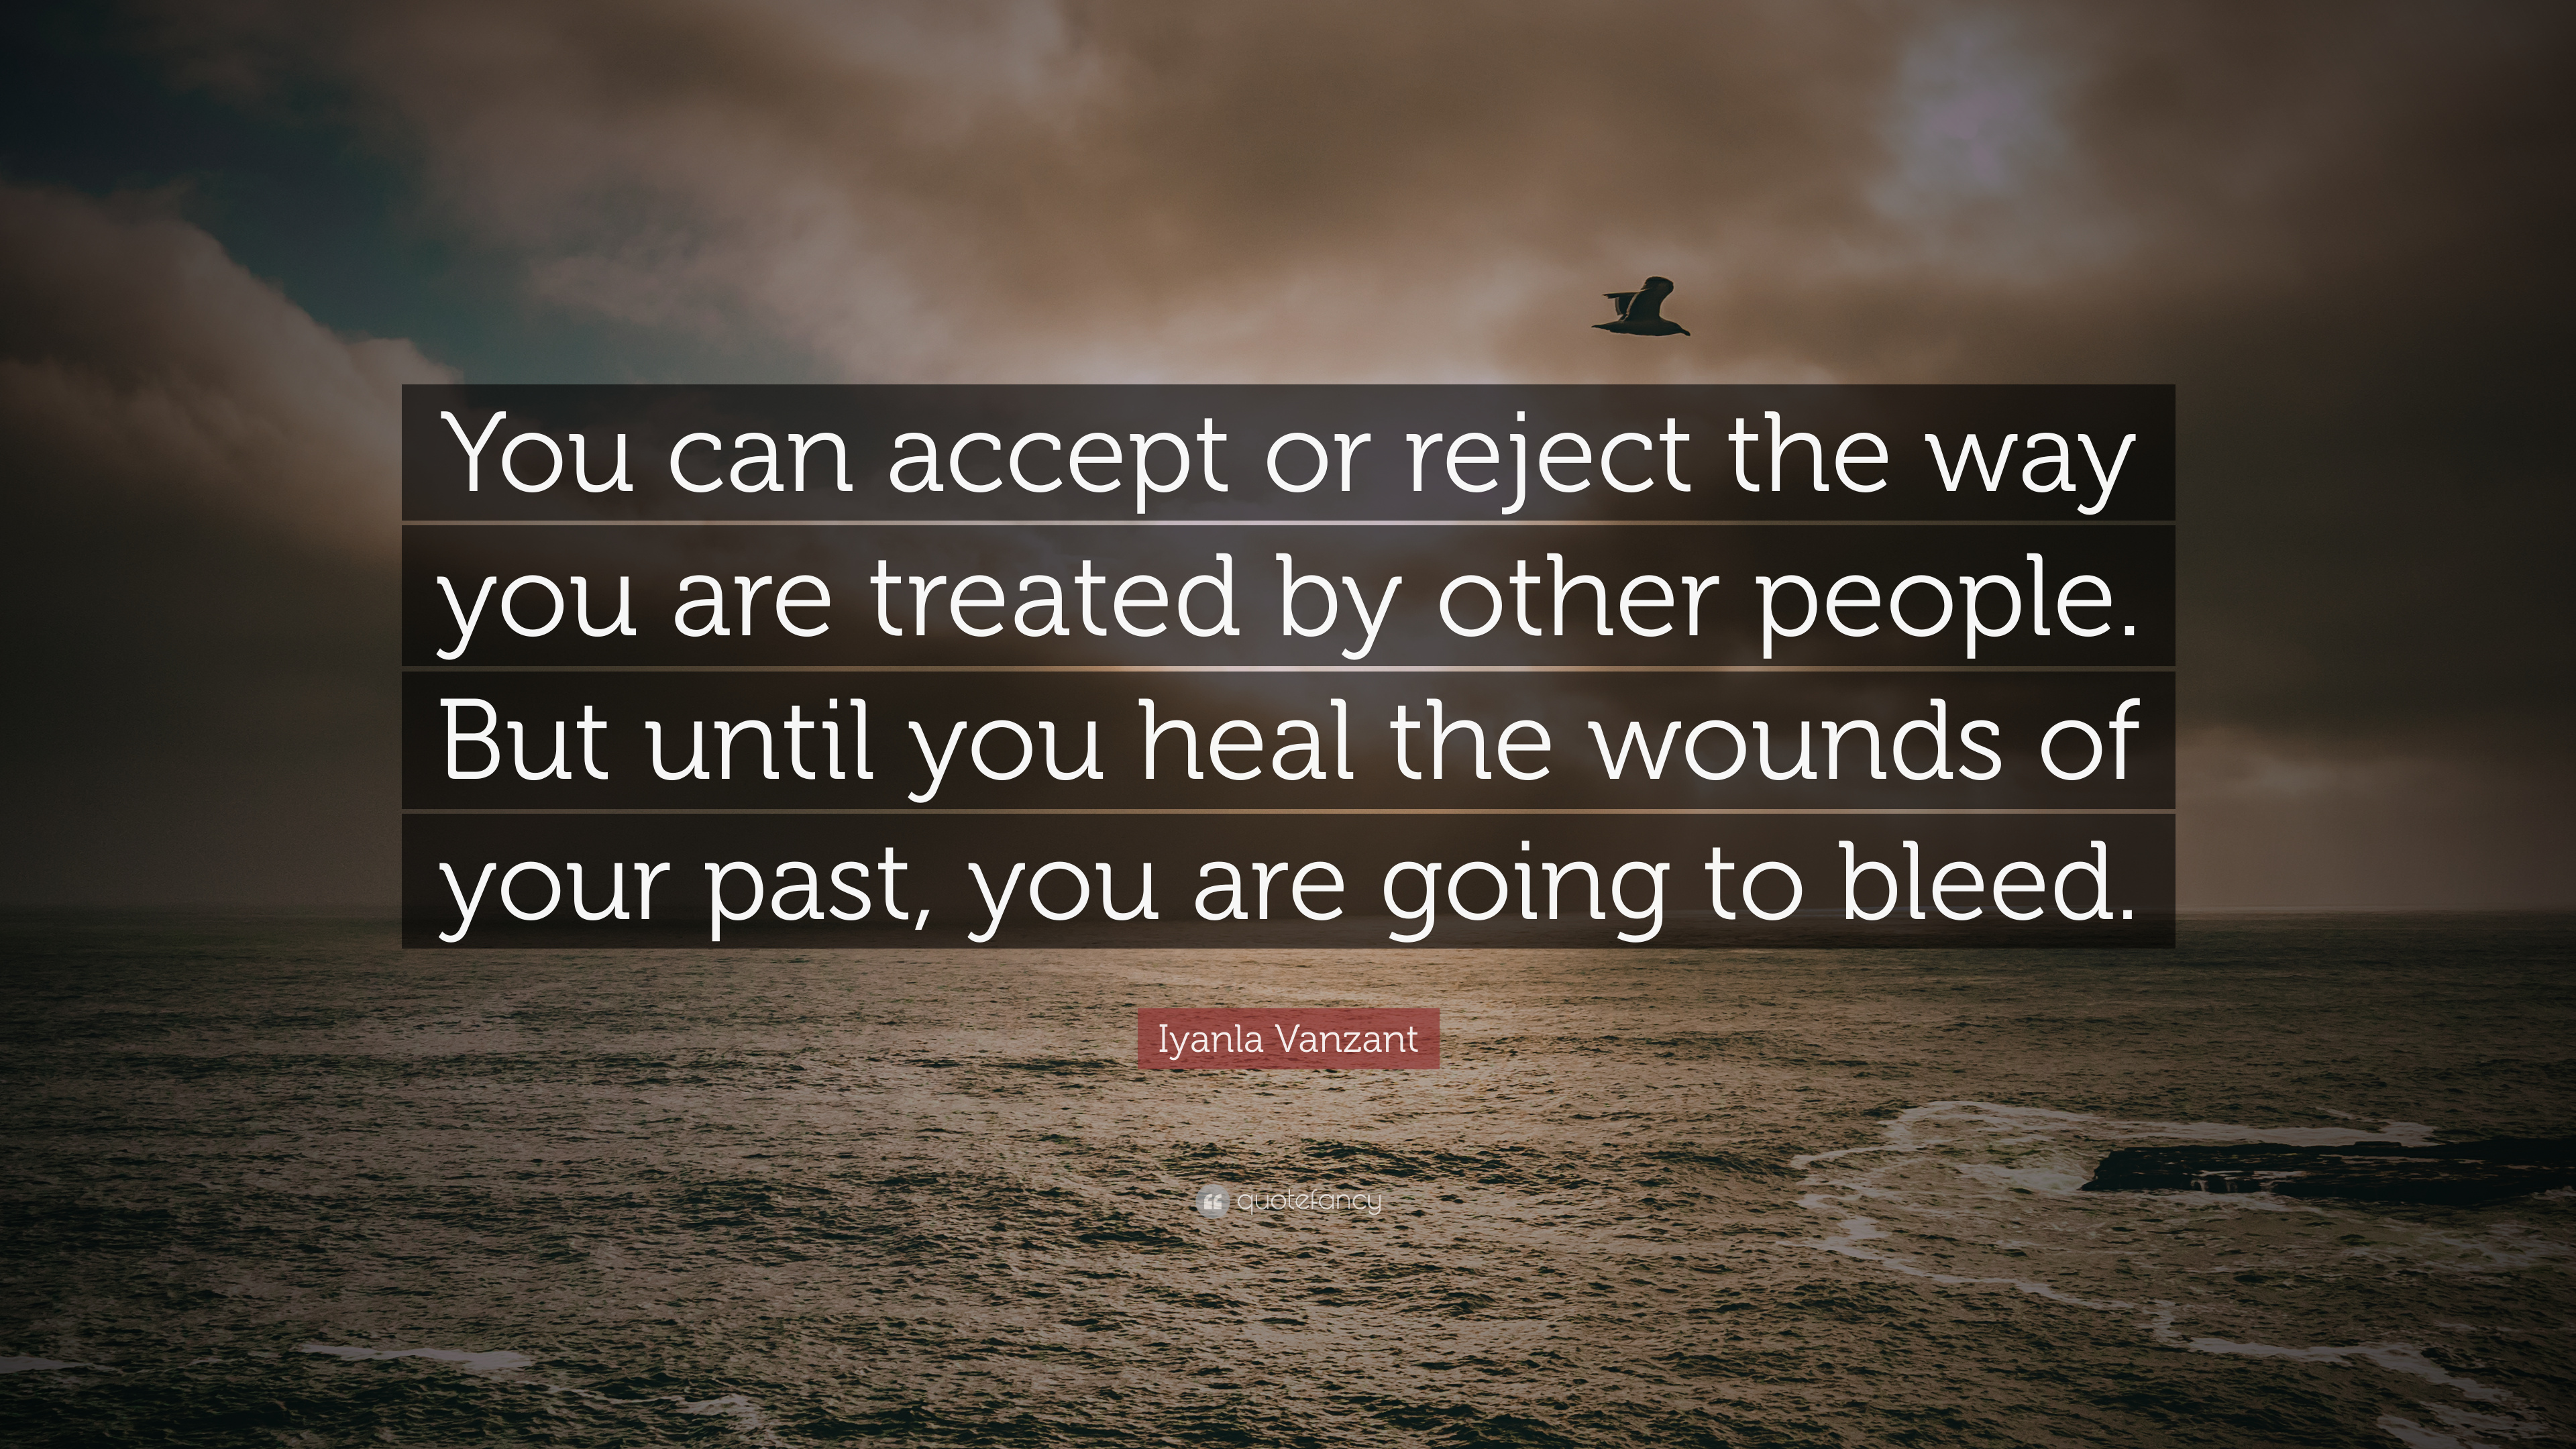 "Iyanla Vanzant Quotes Iyanla Vanzant Quote: ""You can accept or reject the way you are  Iyanla Vanzant Quotes"